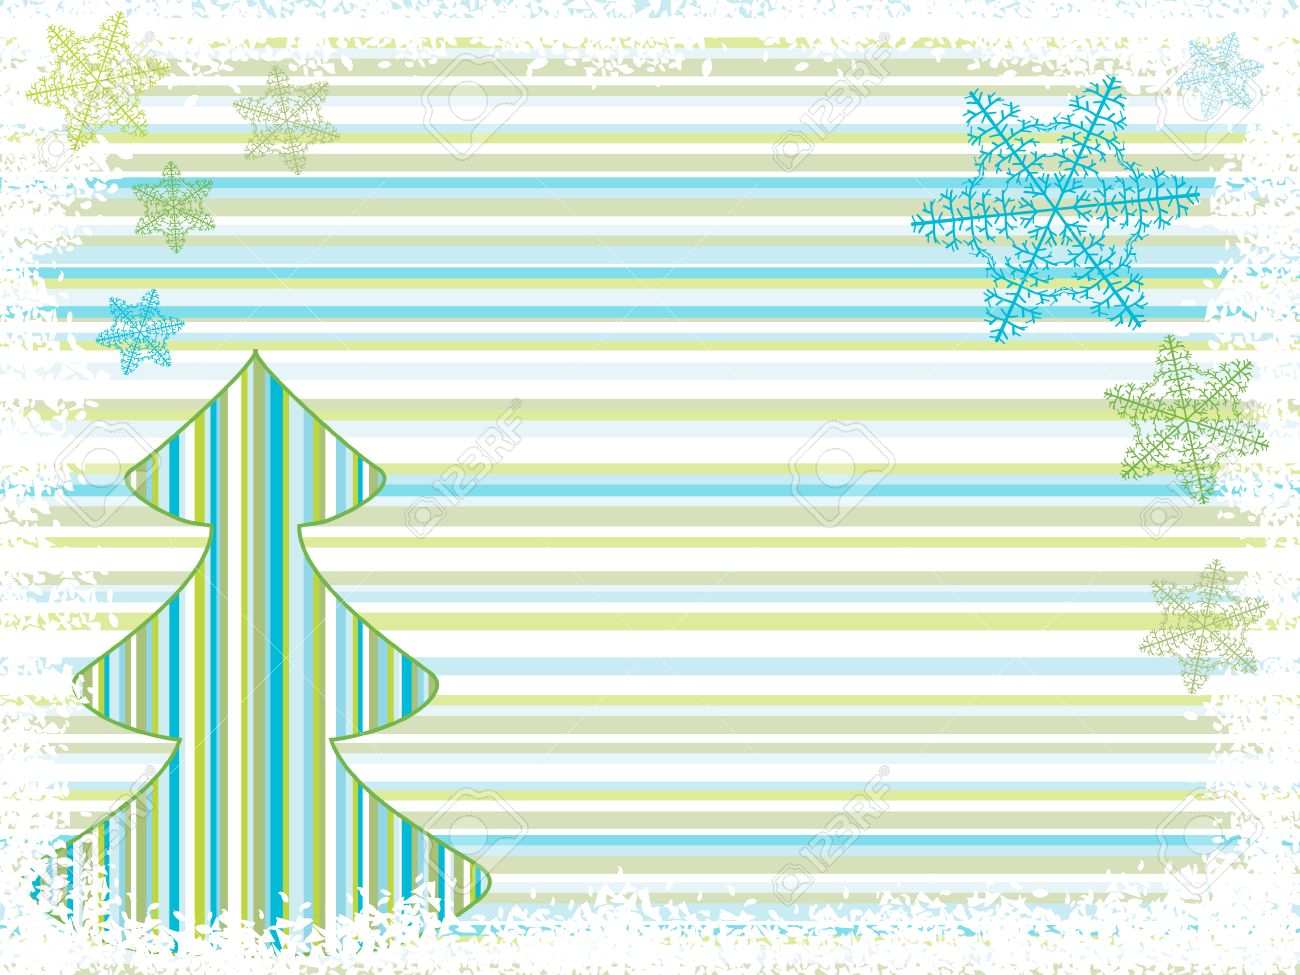 christmas tree backgrounds. holiday vector Stock Vector - 5860793